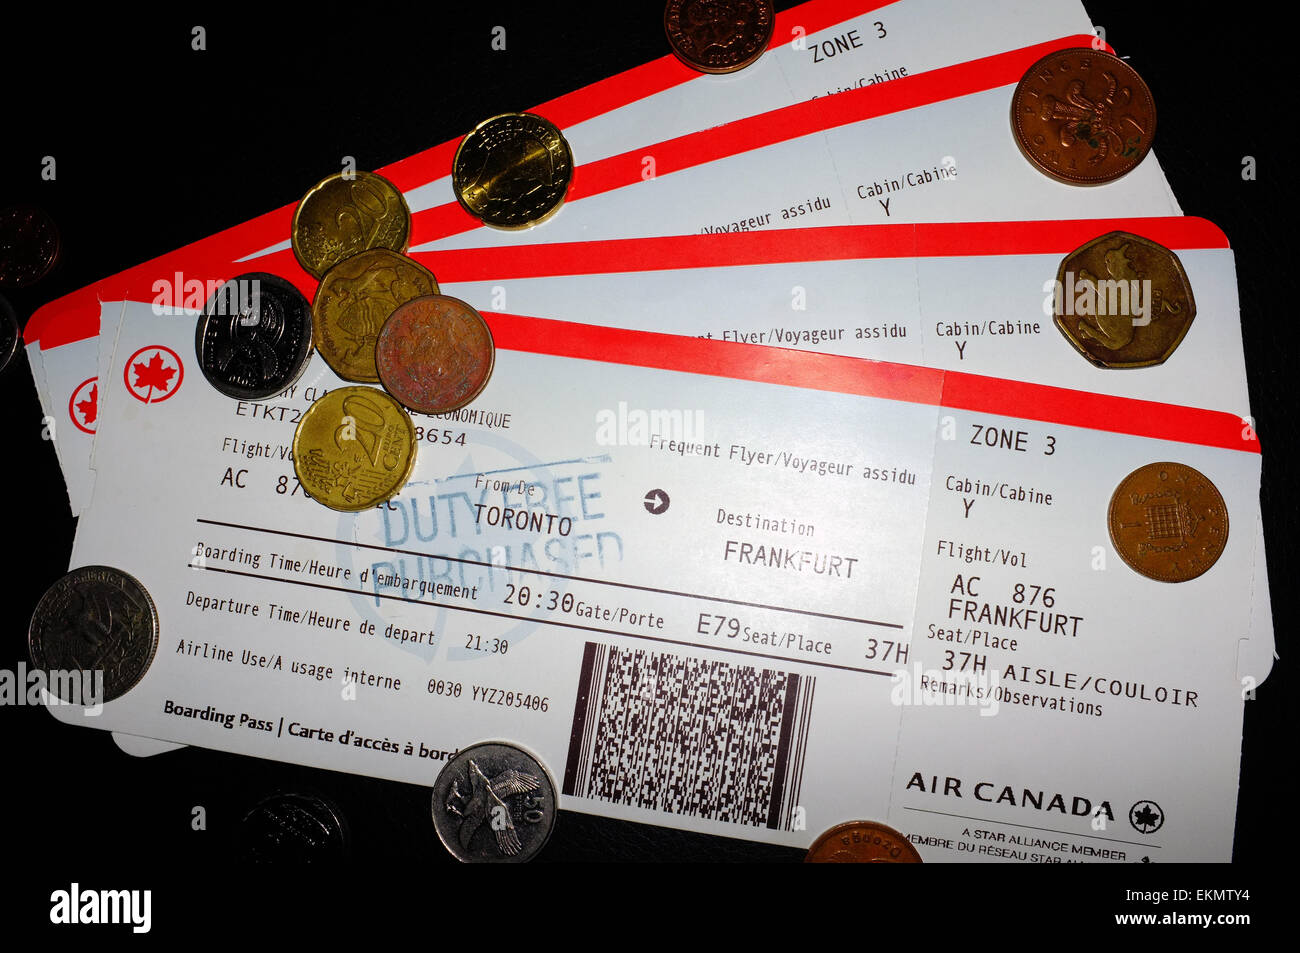 how to print boarding pass for upcoming air canada